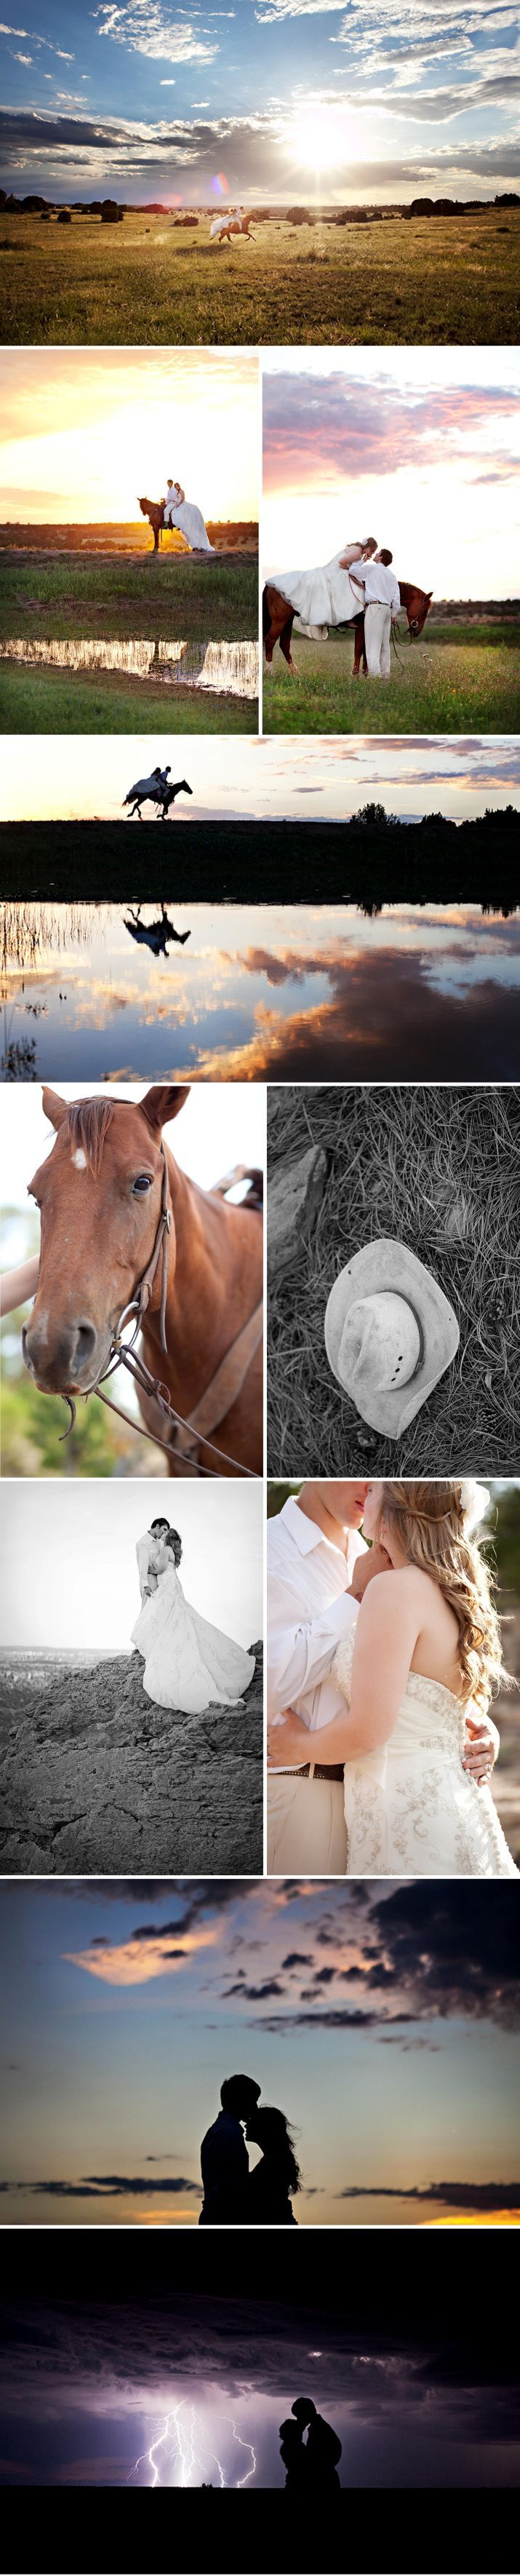 I'm absolutely in love with this bridal shoot! Esp the lighting in the first pic...amazing! LOVE that they include horses